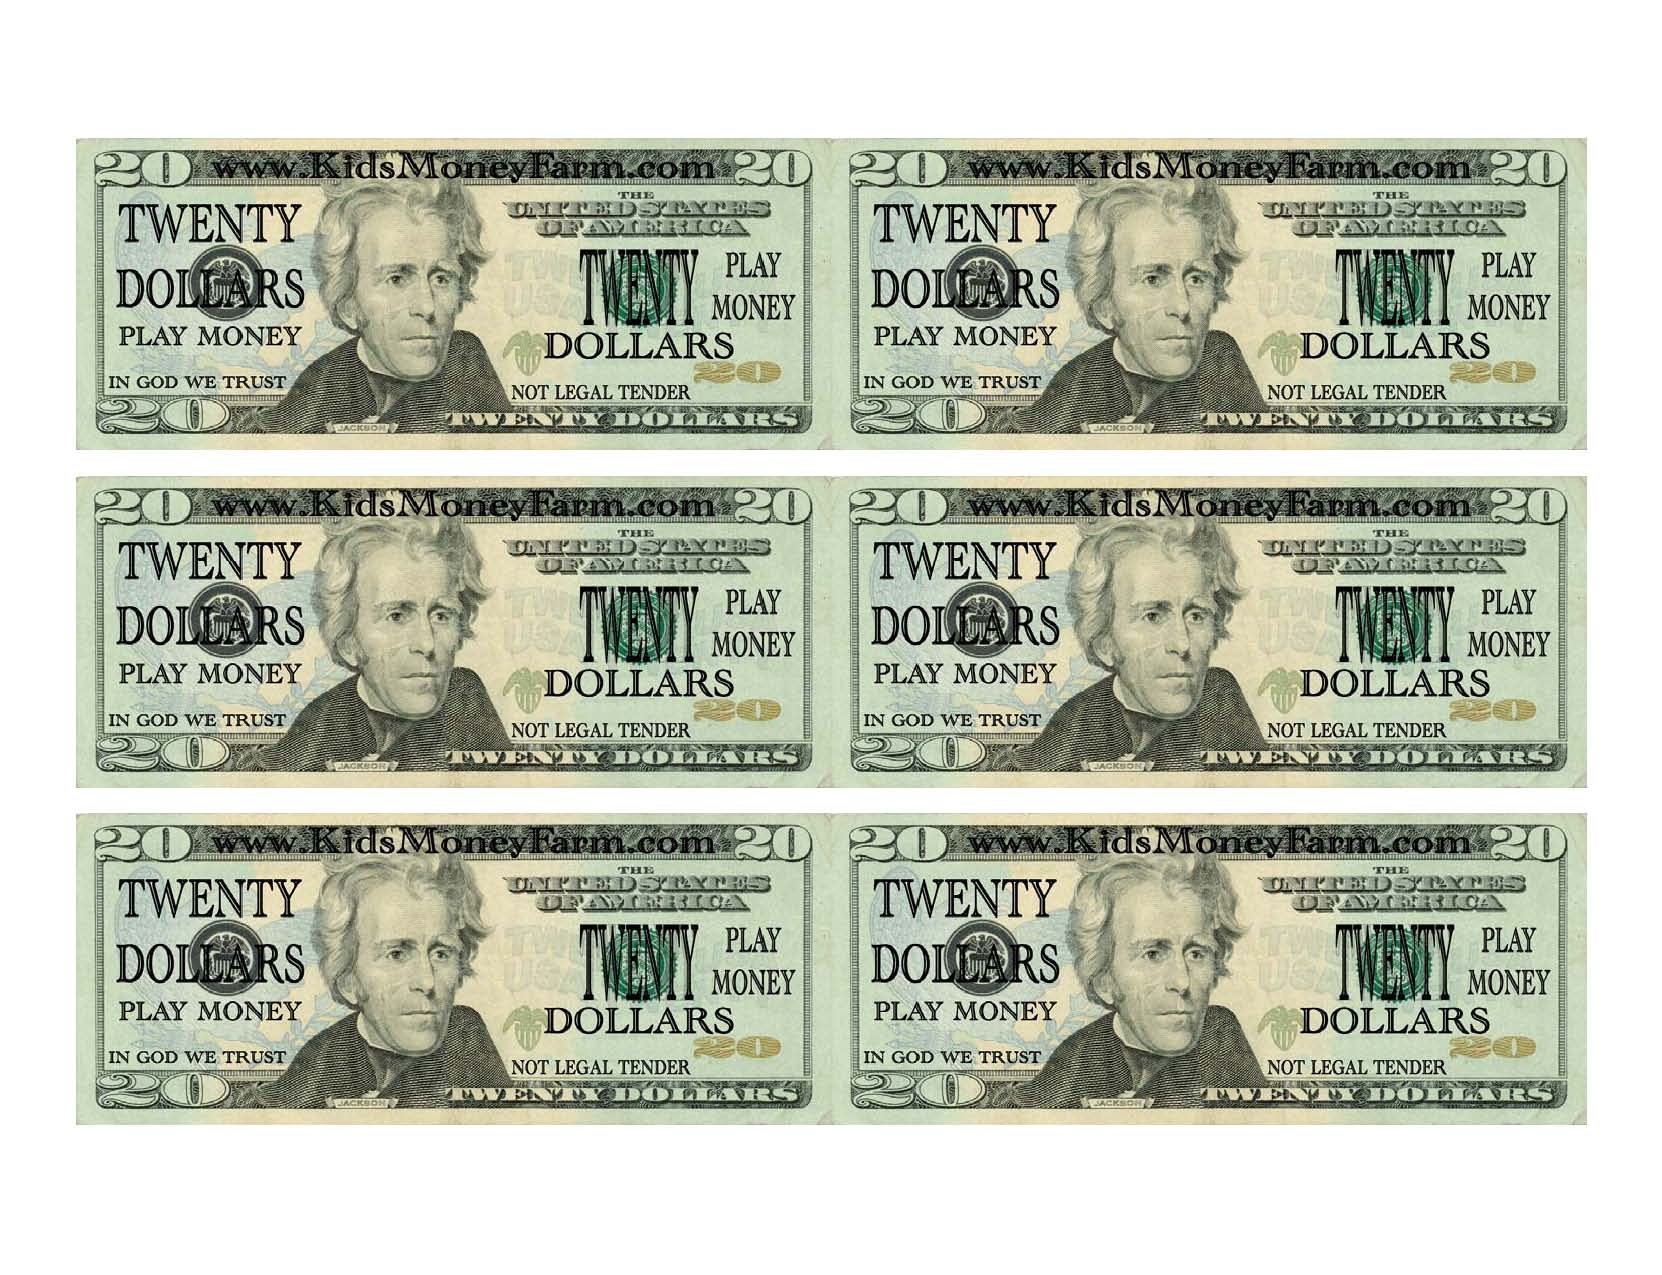 It's just a photo of Free Printable Play Money intended for classic